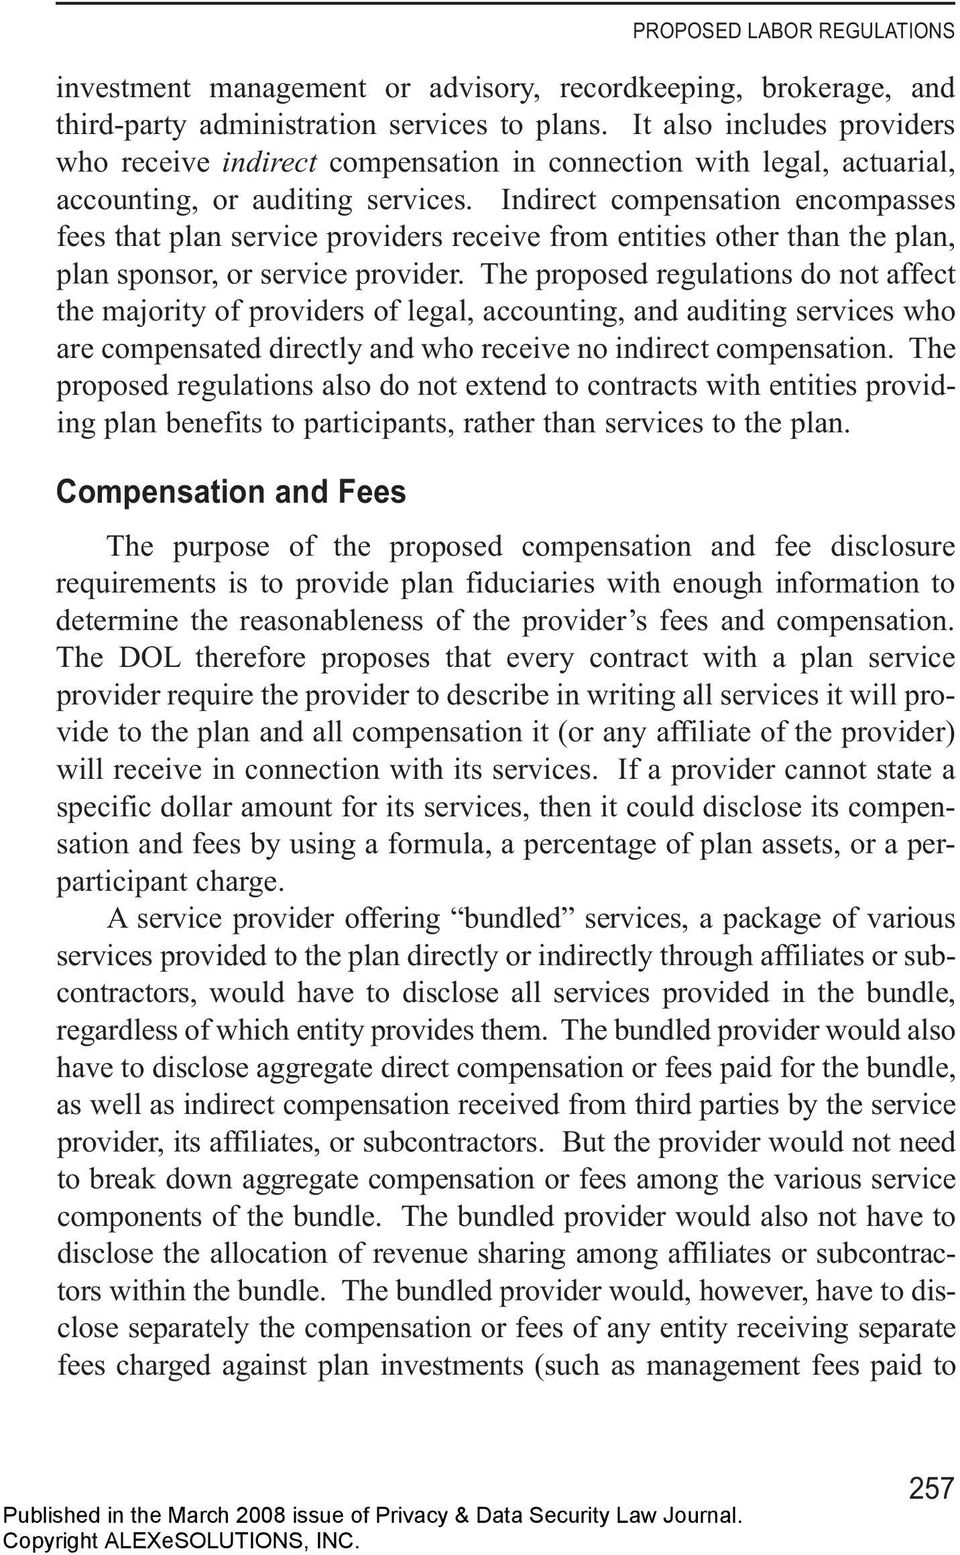 Indirect compensation encompasses fees that plan service providers receive from entities other than the plan, plan sponsor, or service provider.